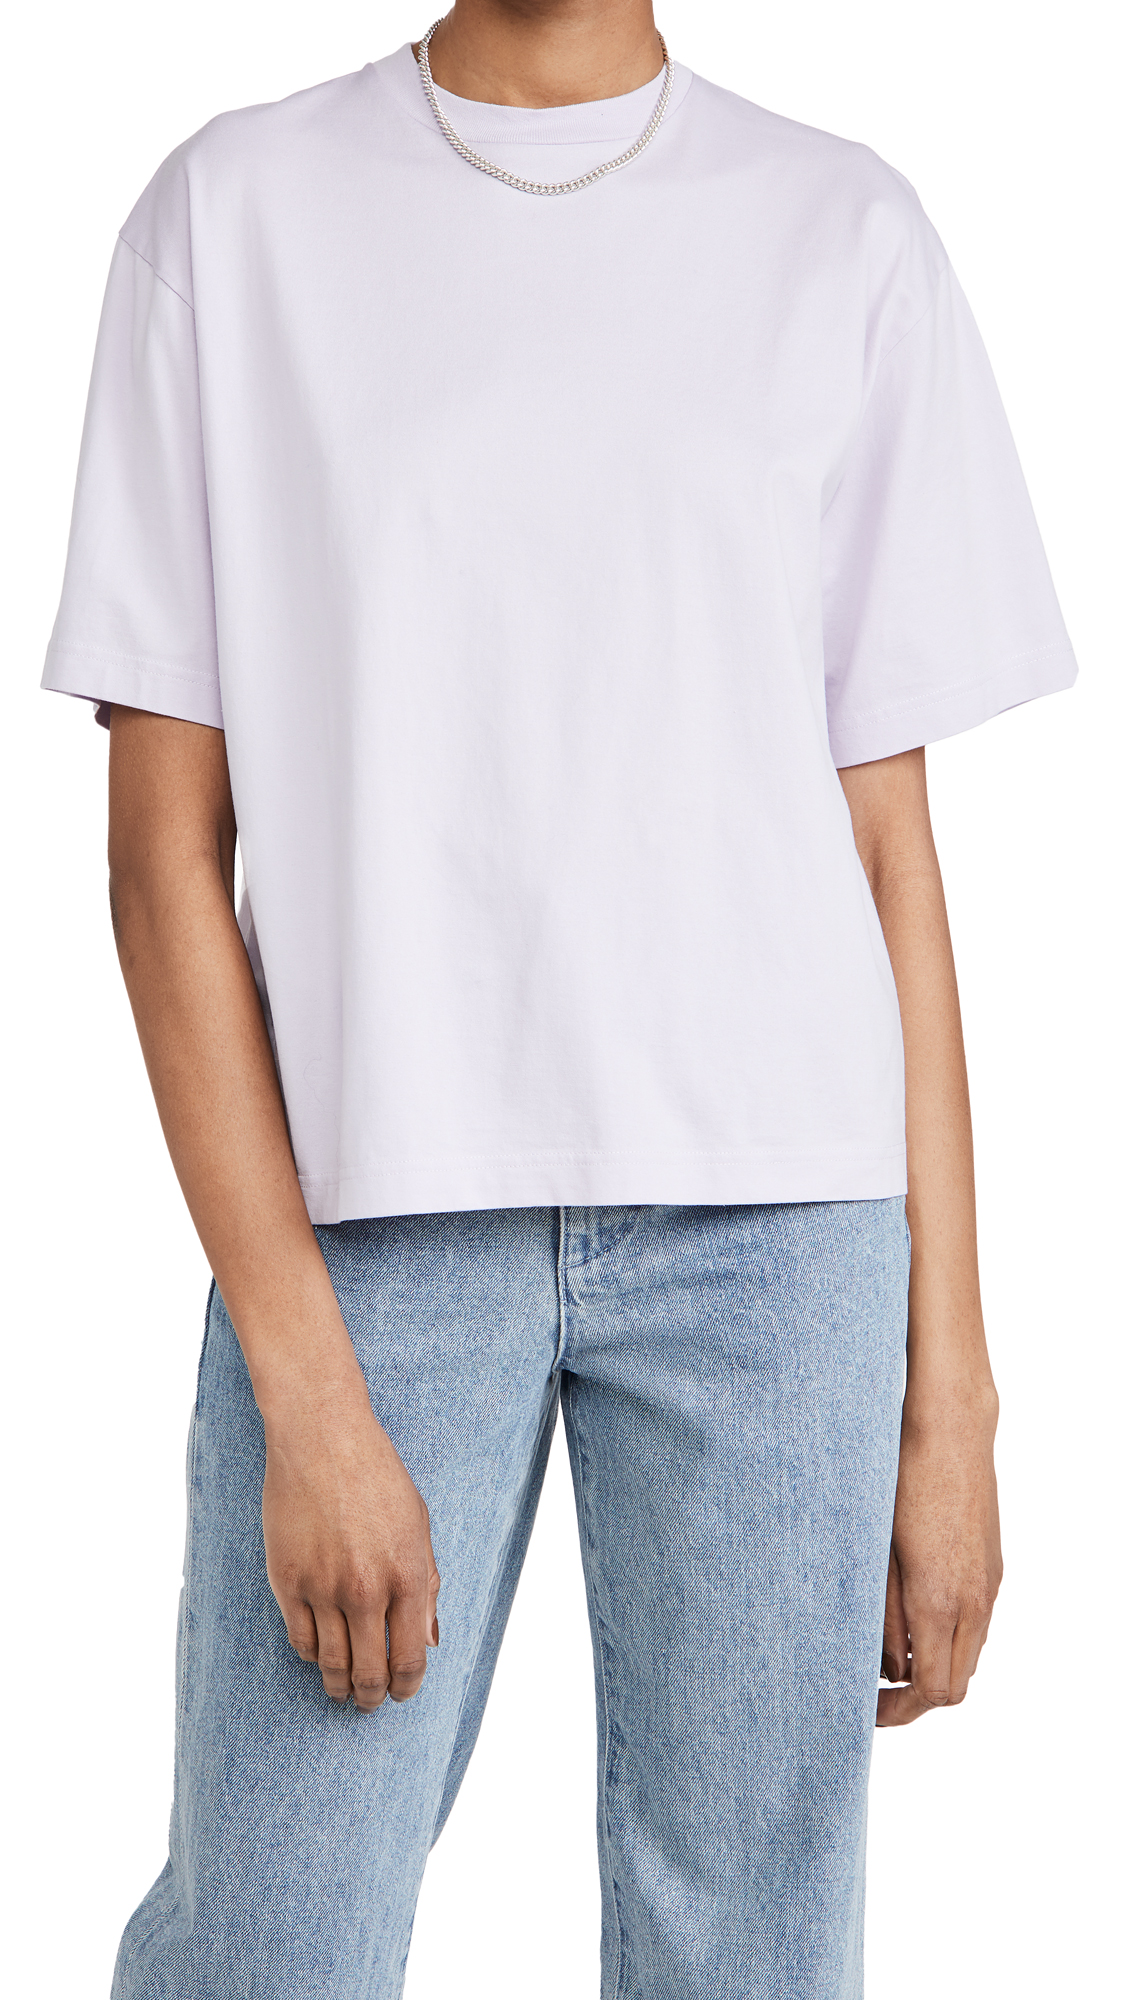 Acne Studios Straight Fit T-Shirt